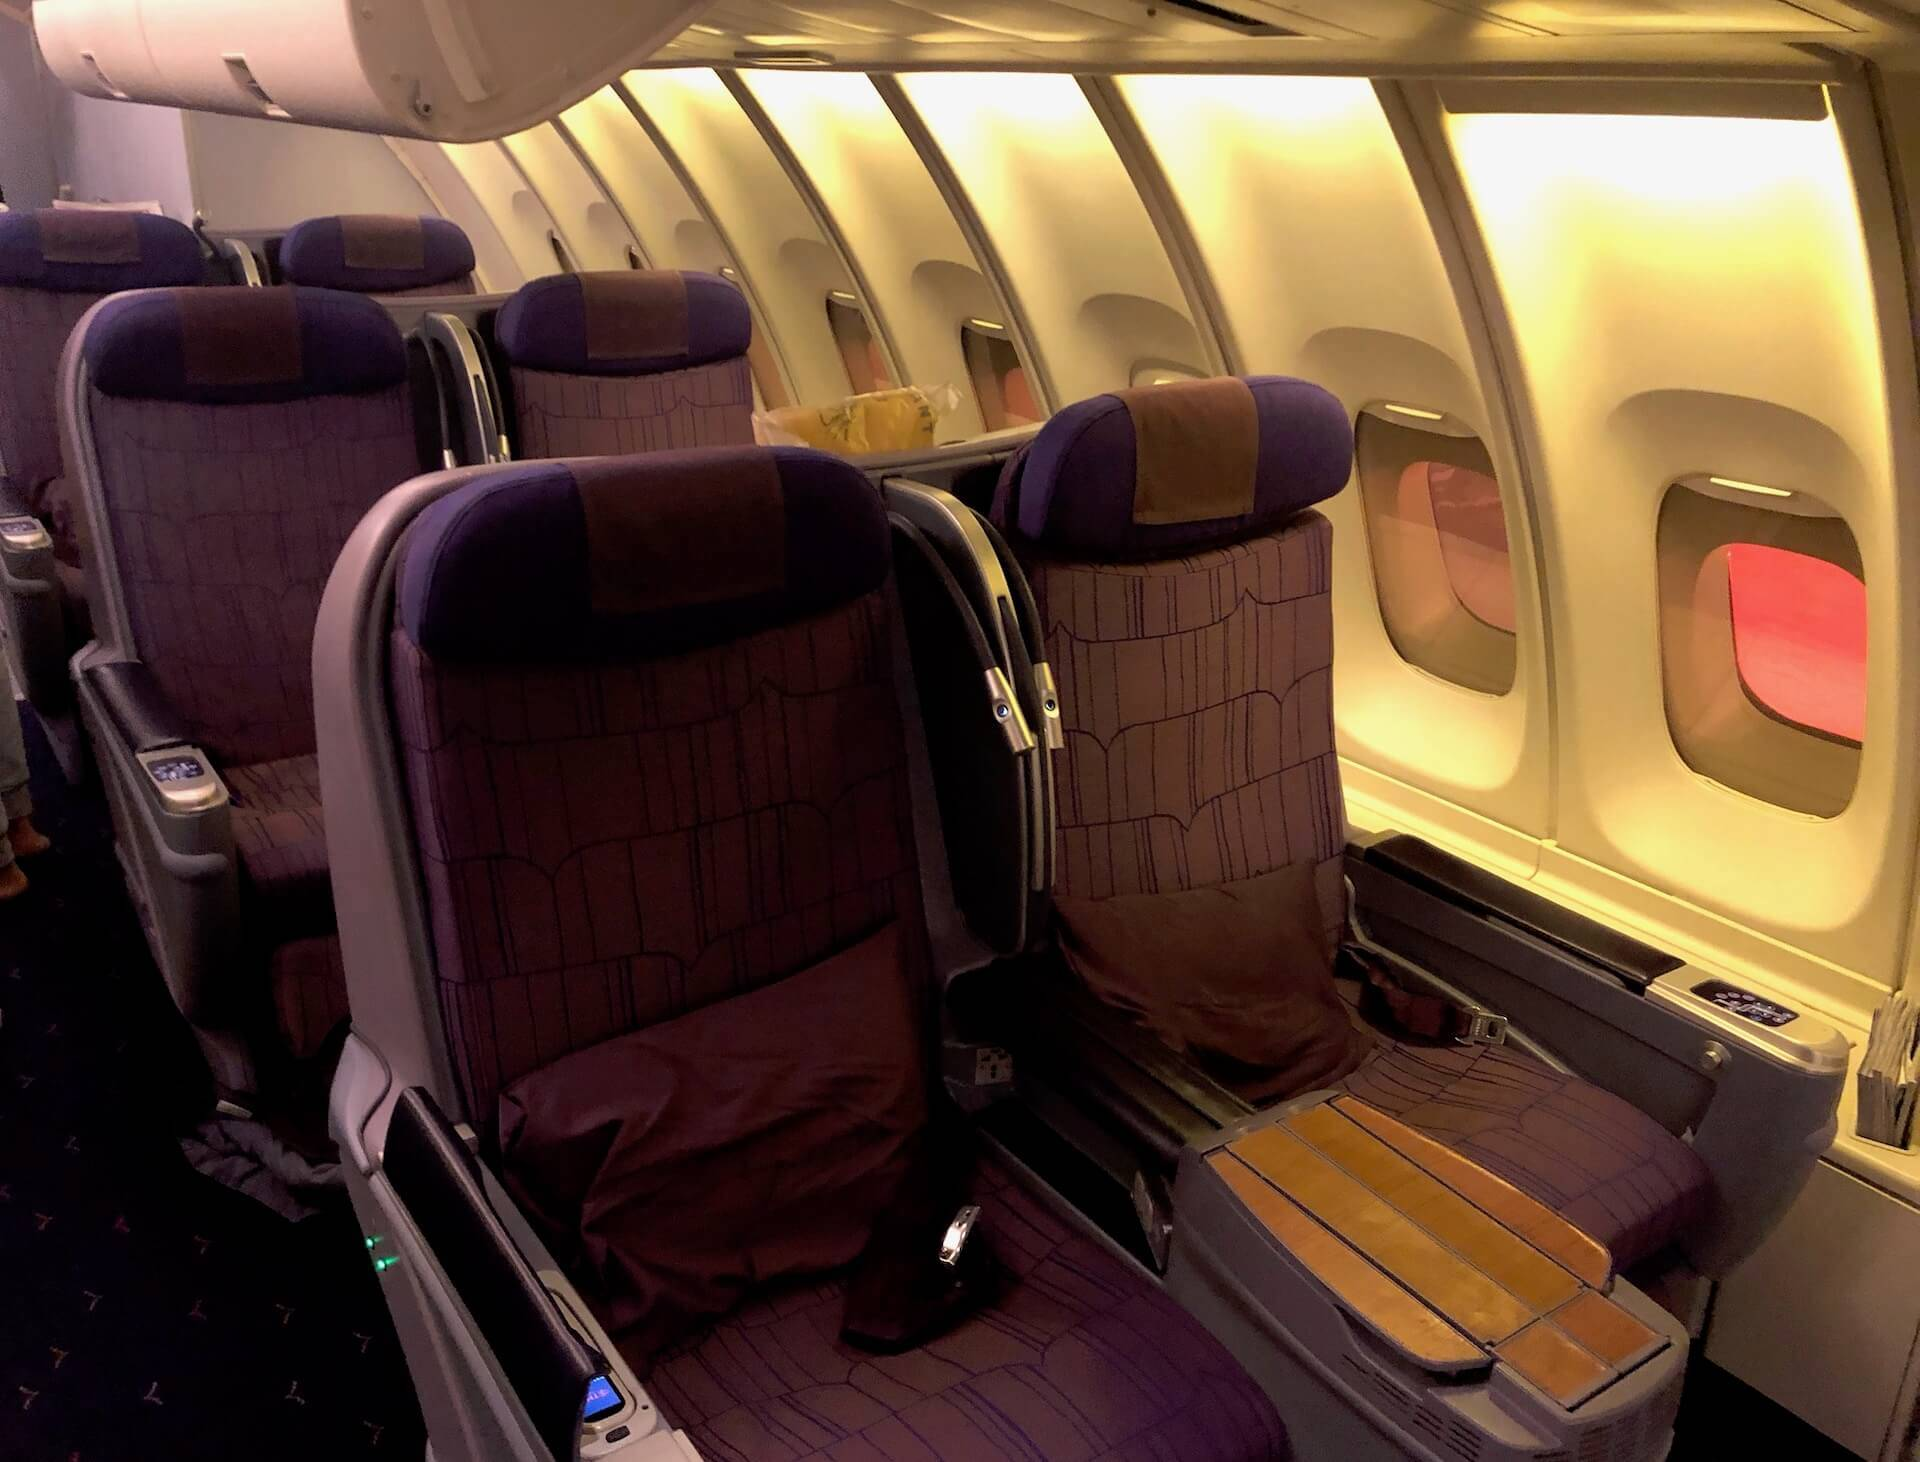 Thai Airways Royal Silk Business Class Inlandsflug 747 Kabine